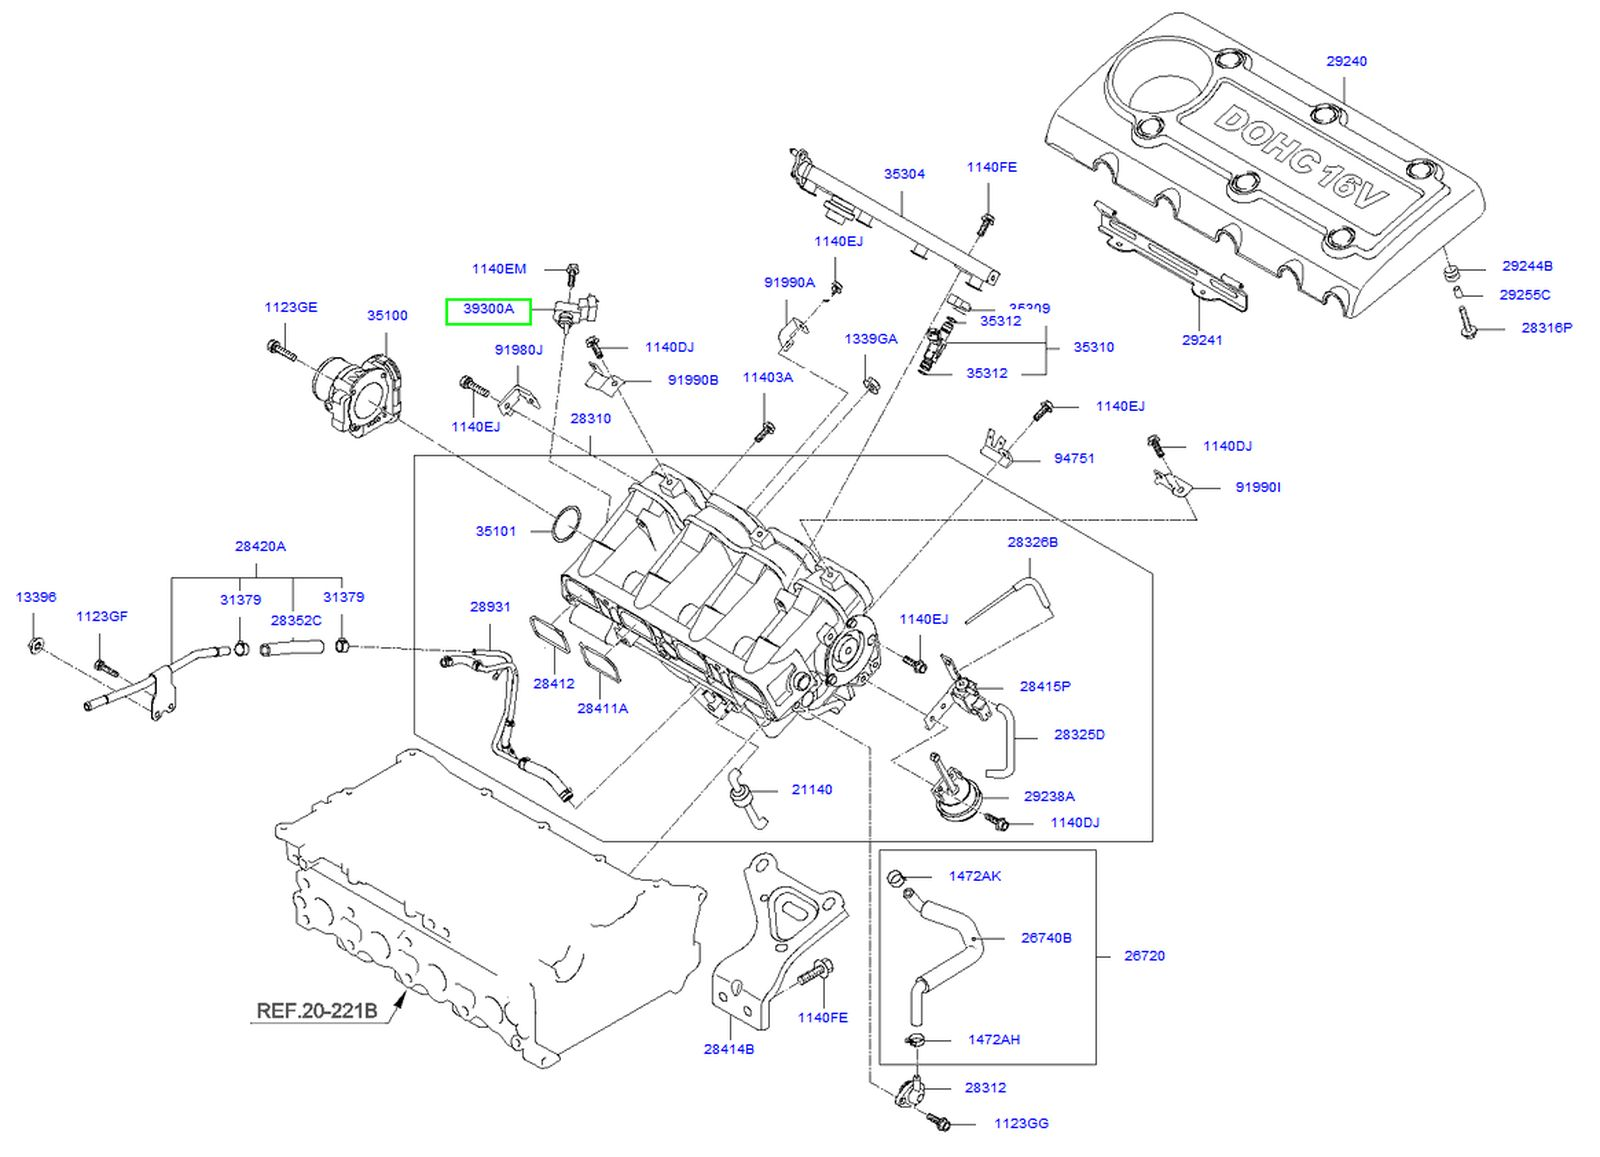 2014 kia sorento engine diagram